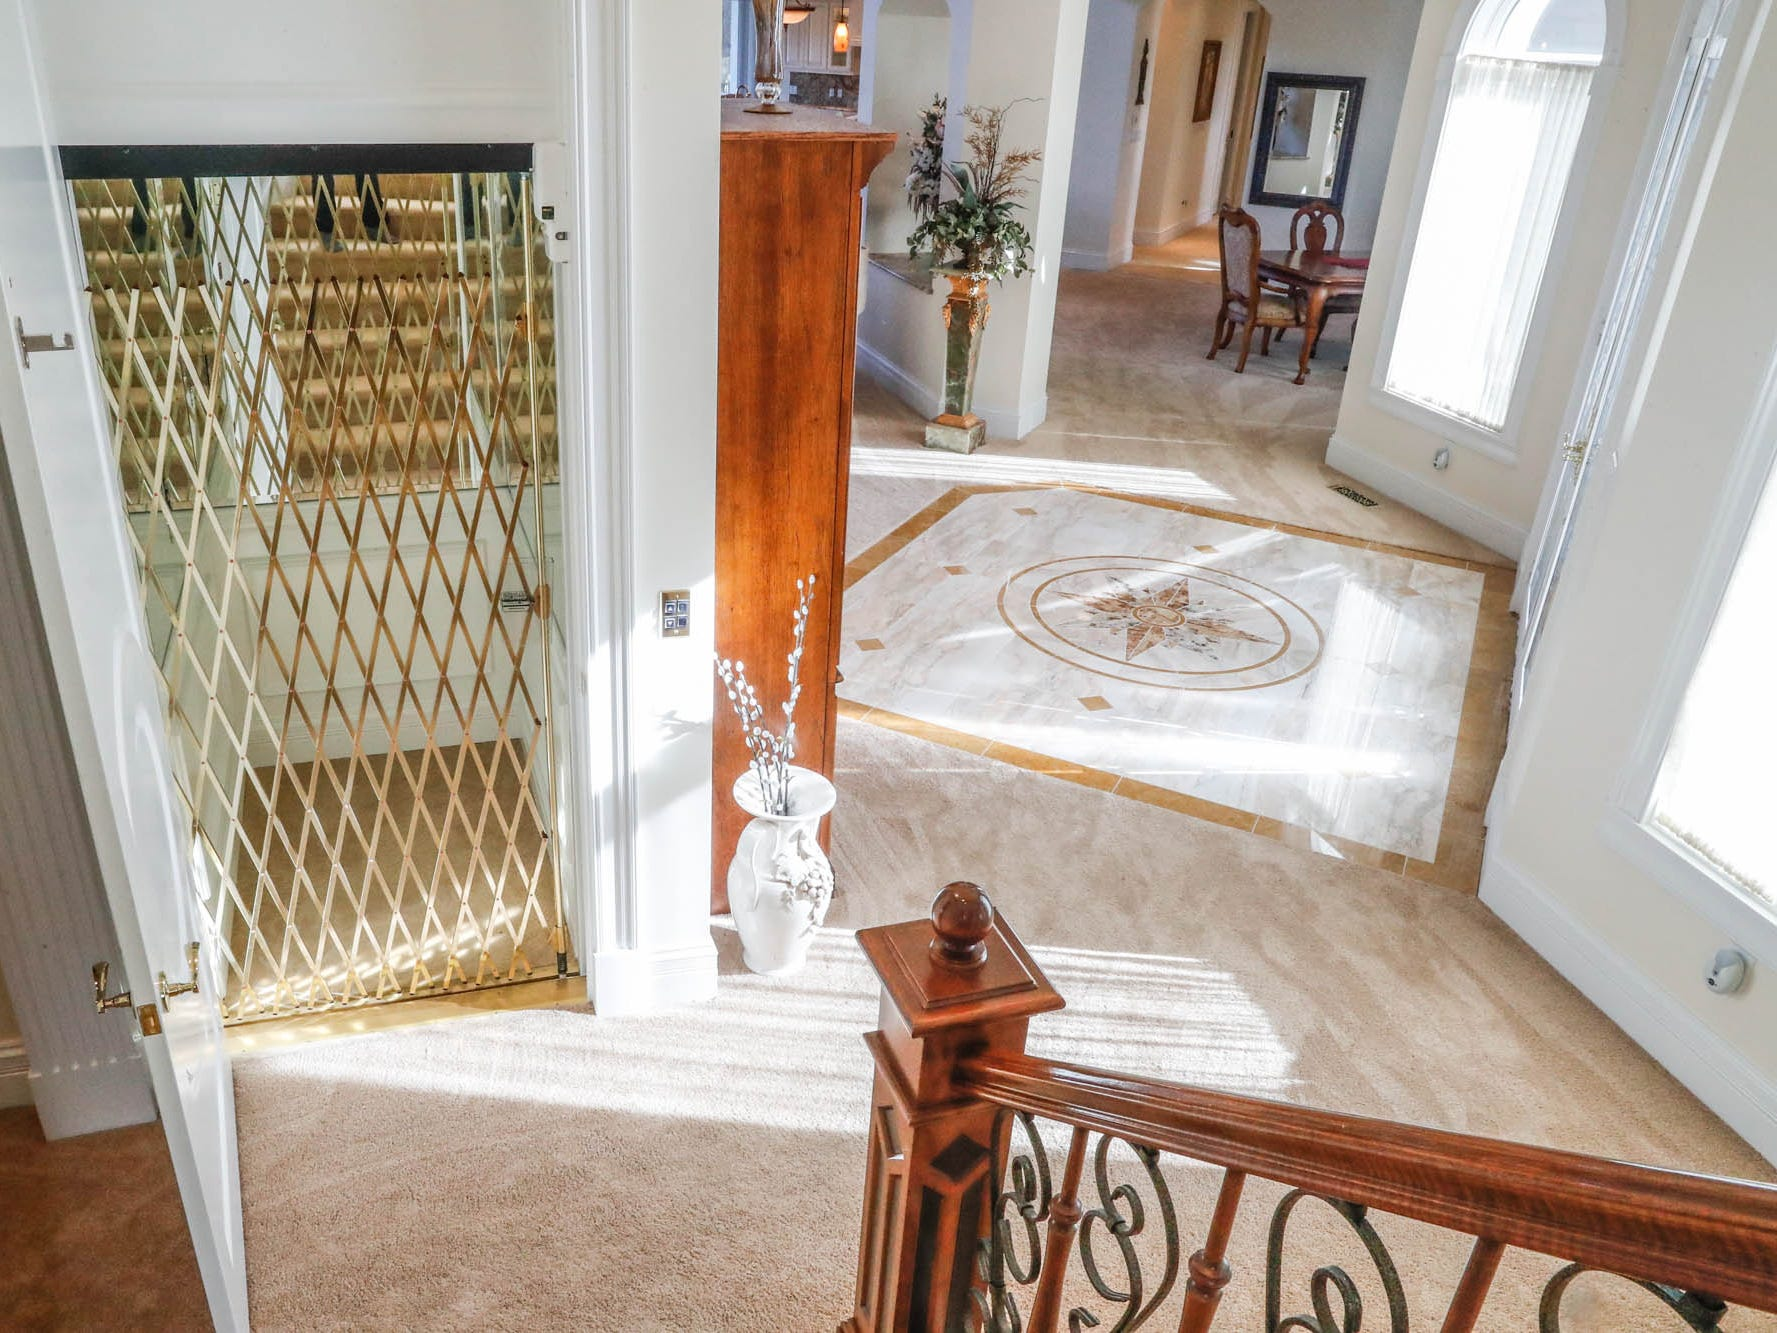 An elevator is located at the base of the grand staircase at a Greenwood home up for sale at 1216 Stone Ridge Court, Greenwood, Ind. on Wednesday, Jan. 30, 2019. The home features 8,234 square feet, four bedrooms, two master suits, a 10 car garage, and exercise room.